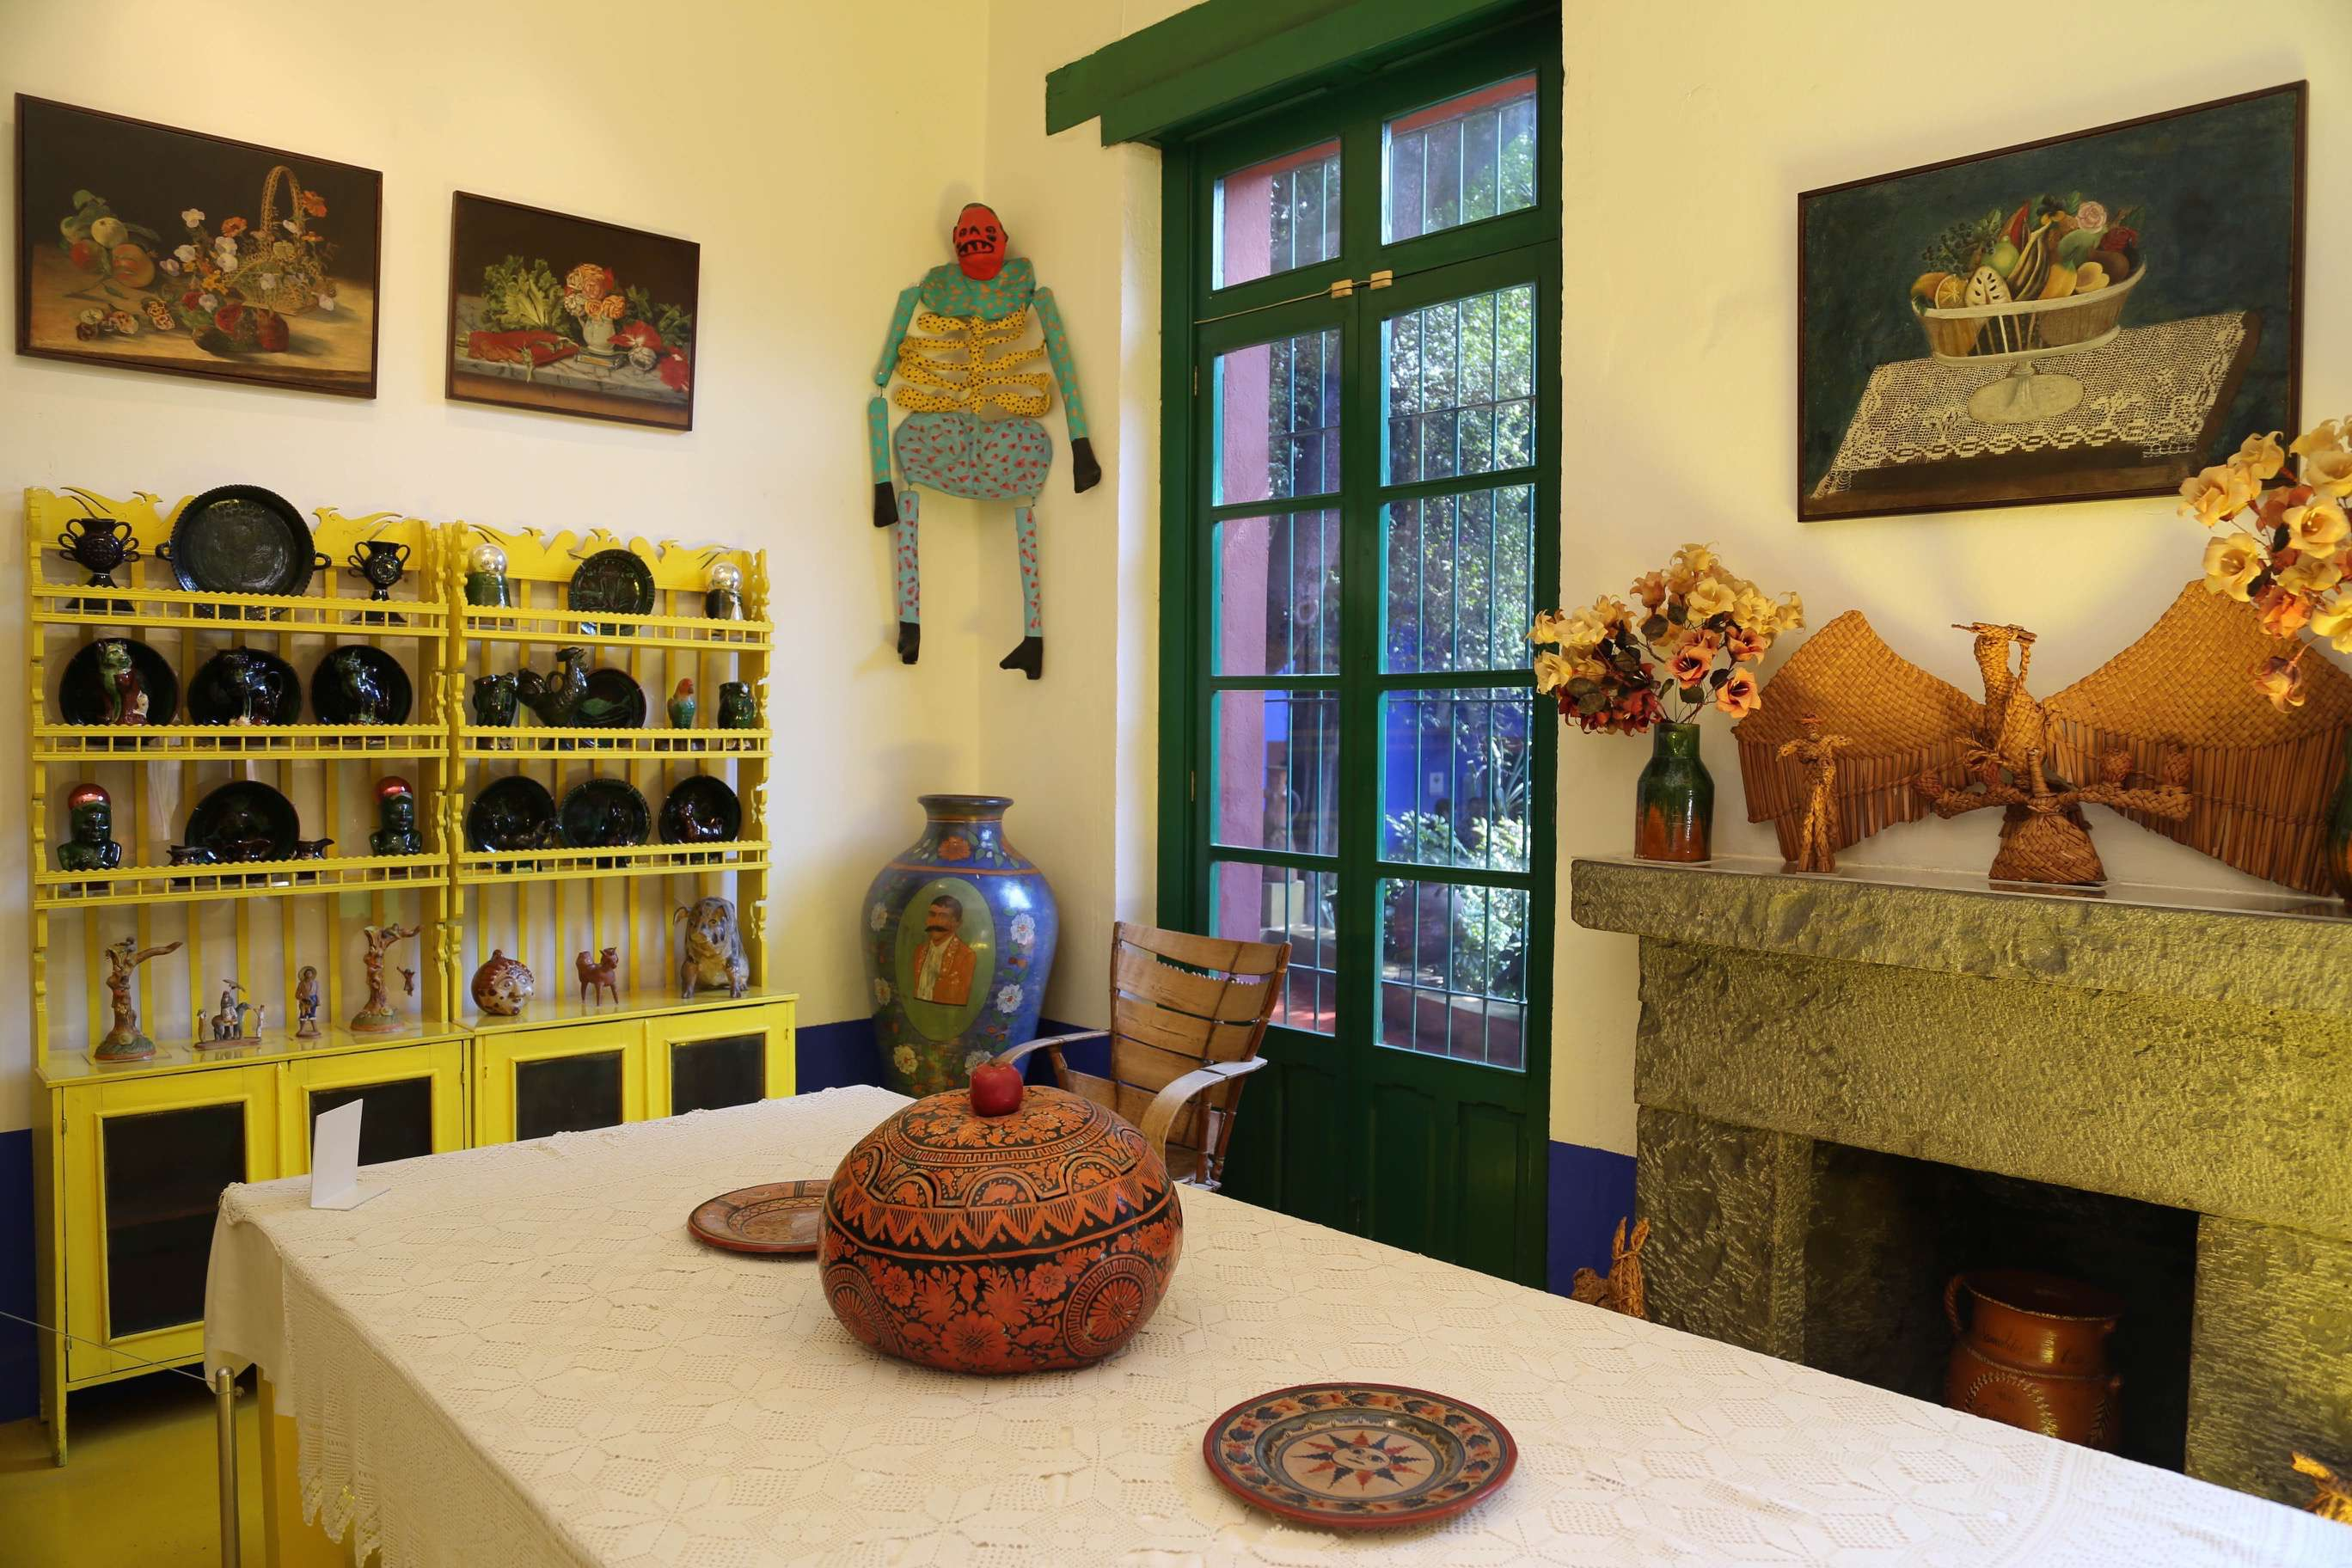 The dining area at Casa Azul shows the bright colors and traditional themes that are found throughout Casa Azul.